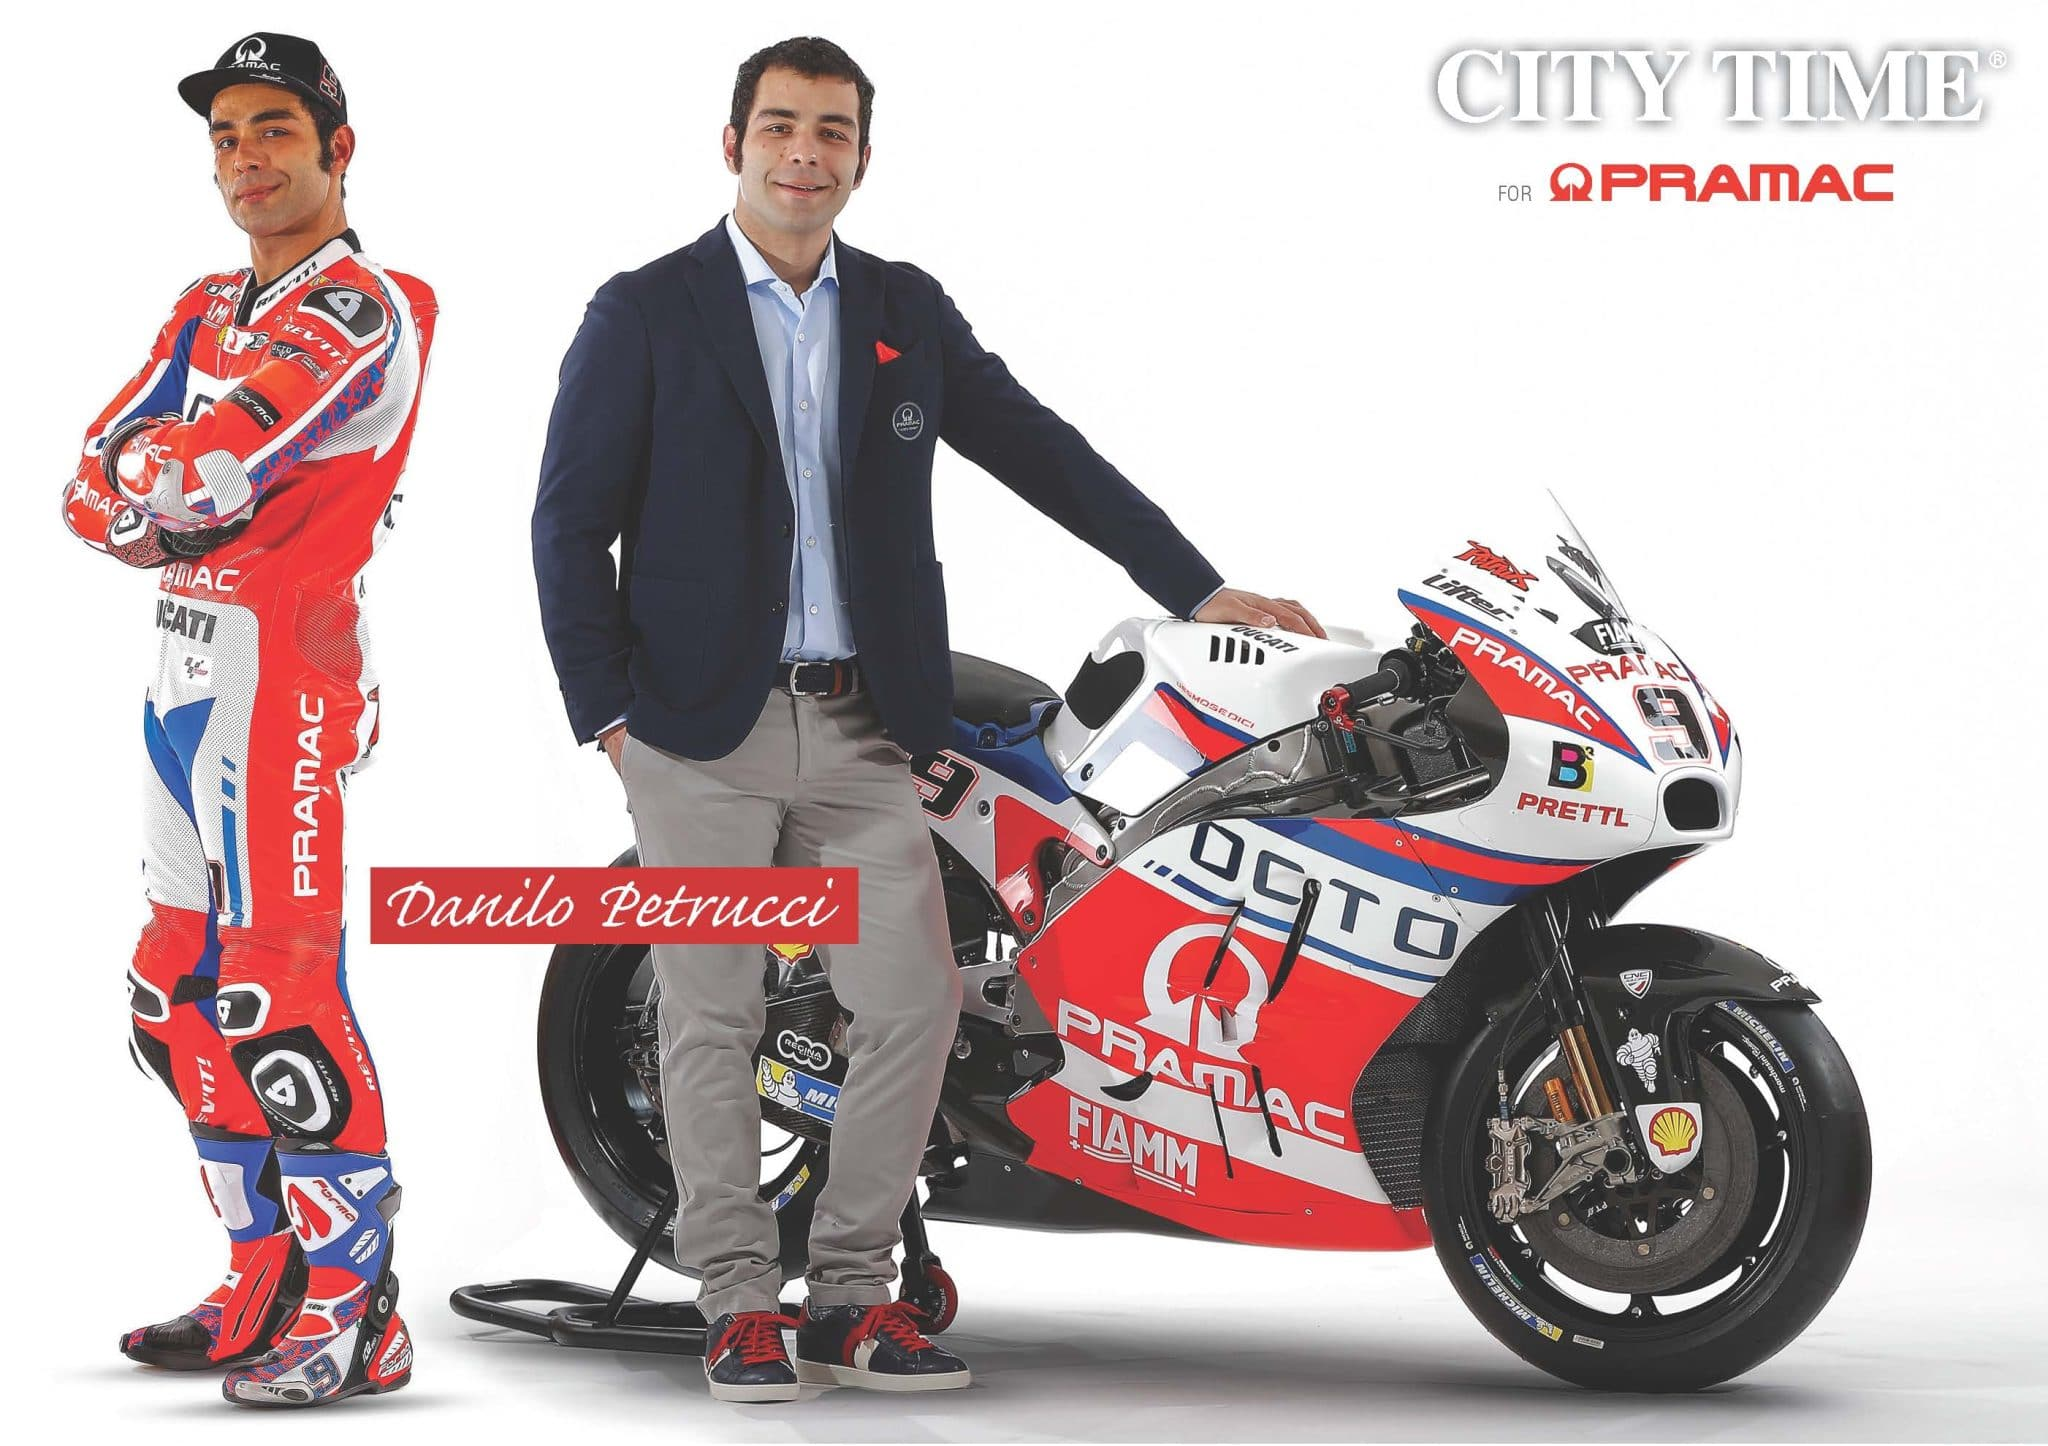 Photo of Il Team MotoGP Alma Pramac Racing veste CITY TIME. Presentata in anteprima a Firenze la nuova collezione